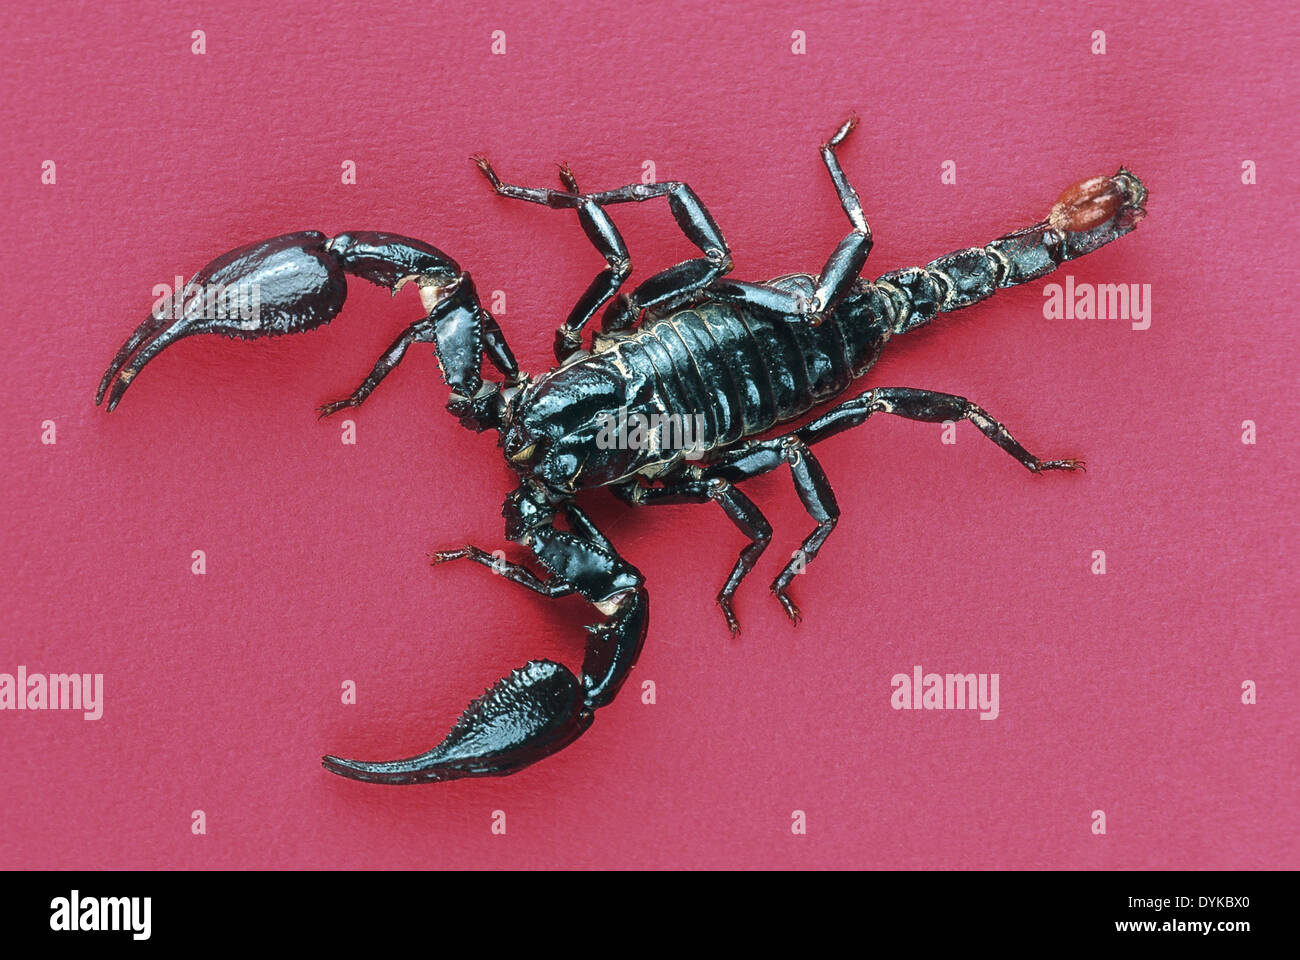 Skorpion, scorpion, Blauer Thai. | scorpion, blue Thai. - Stock Image